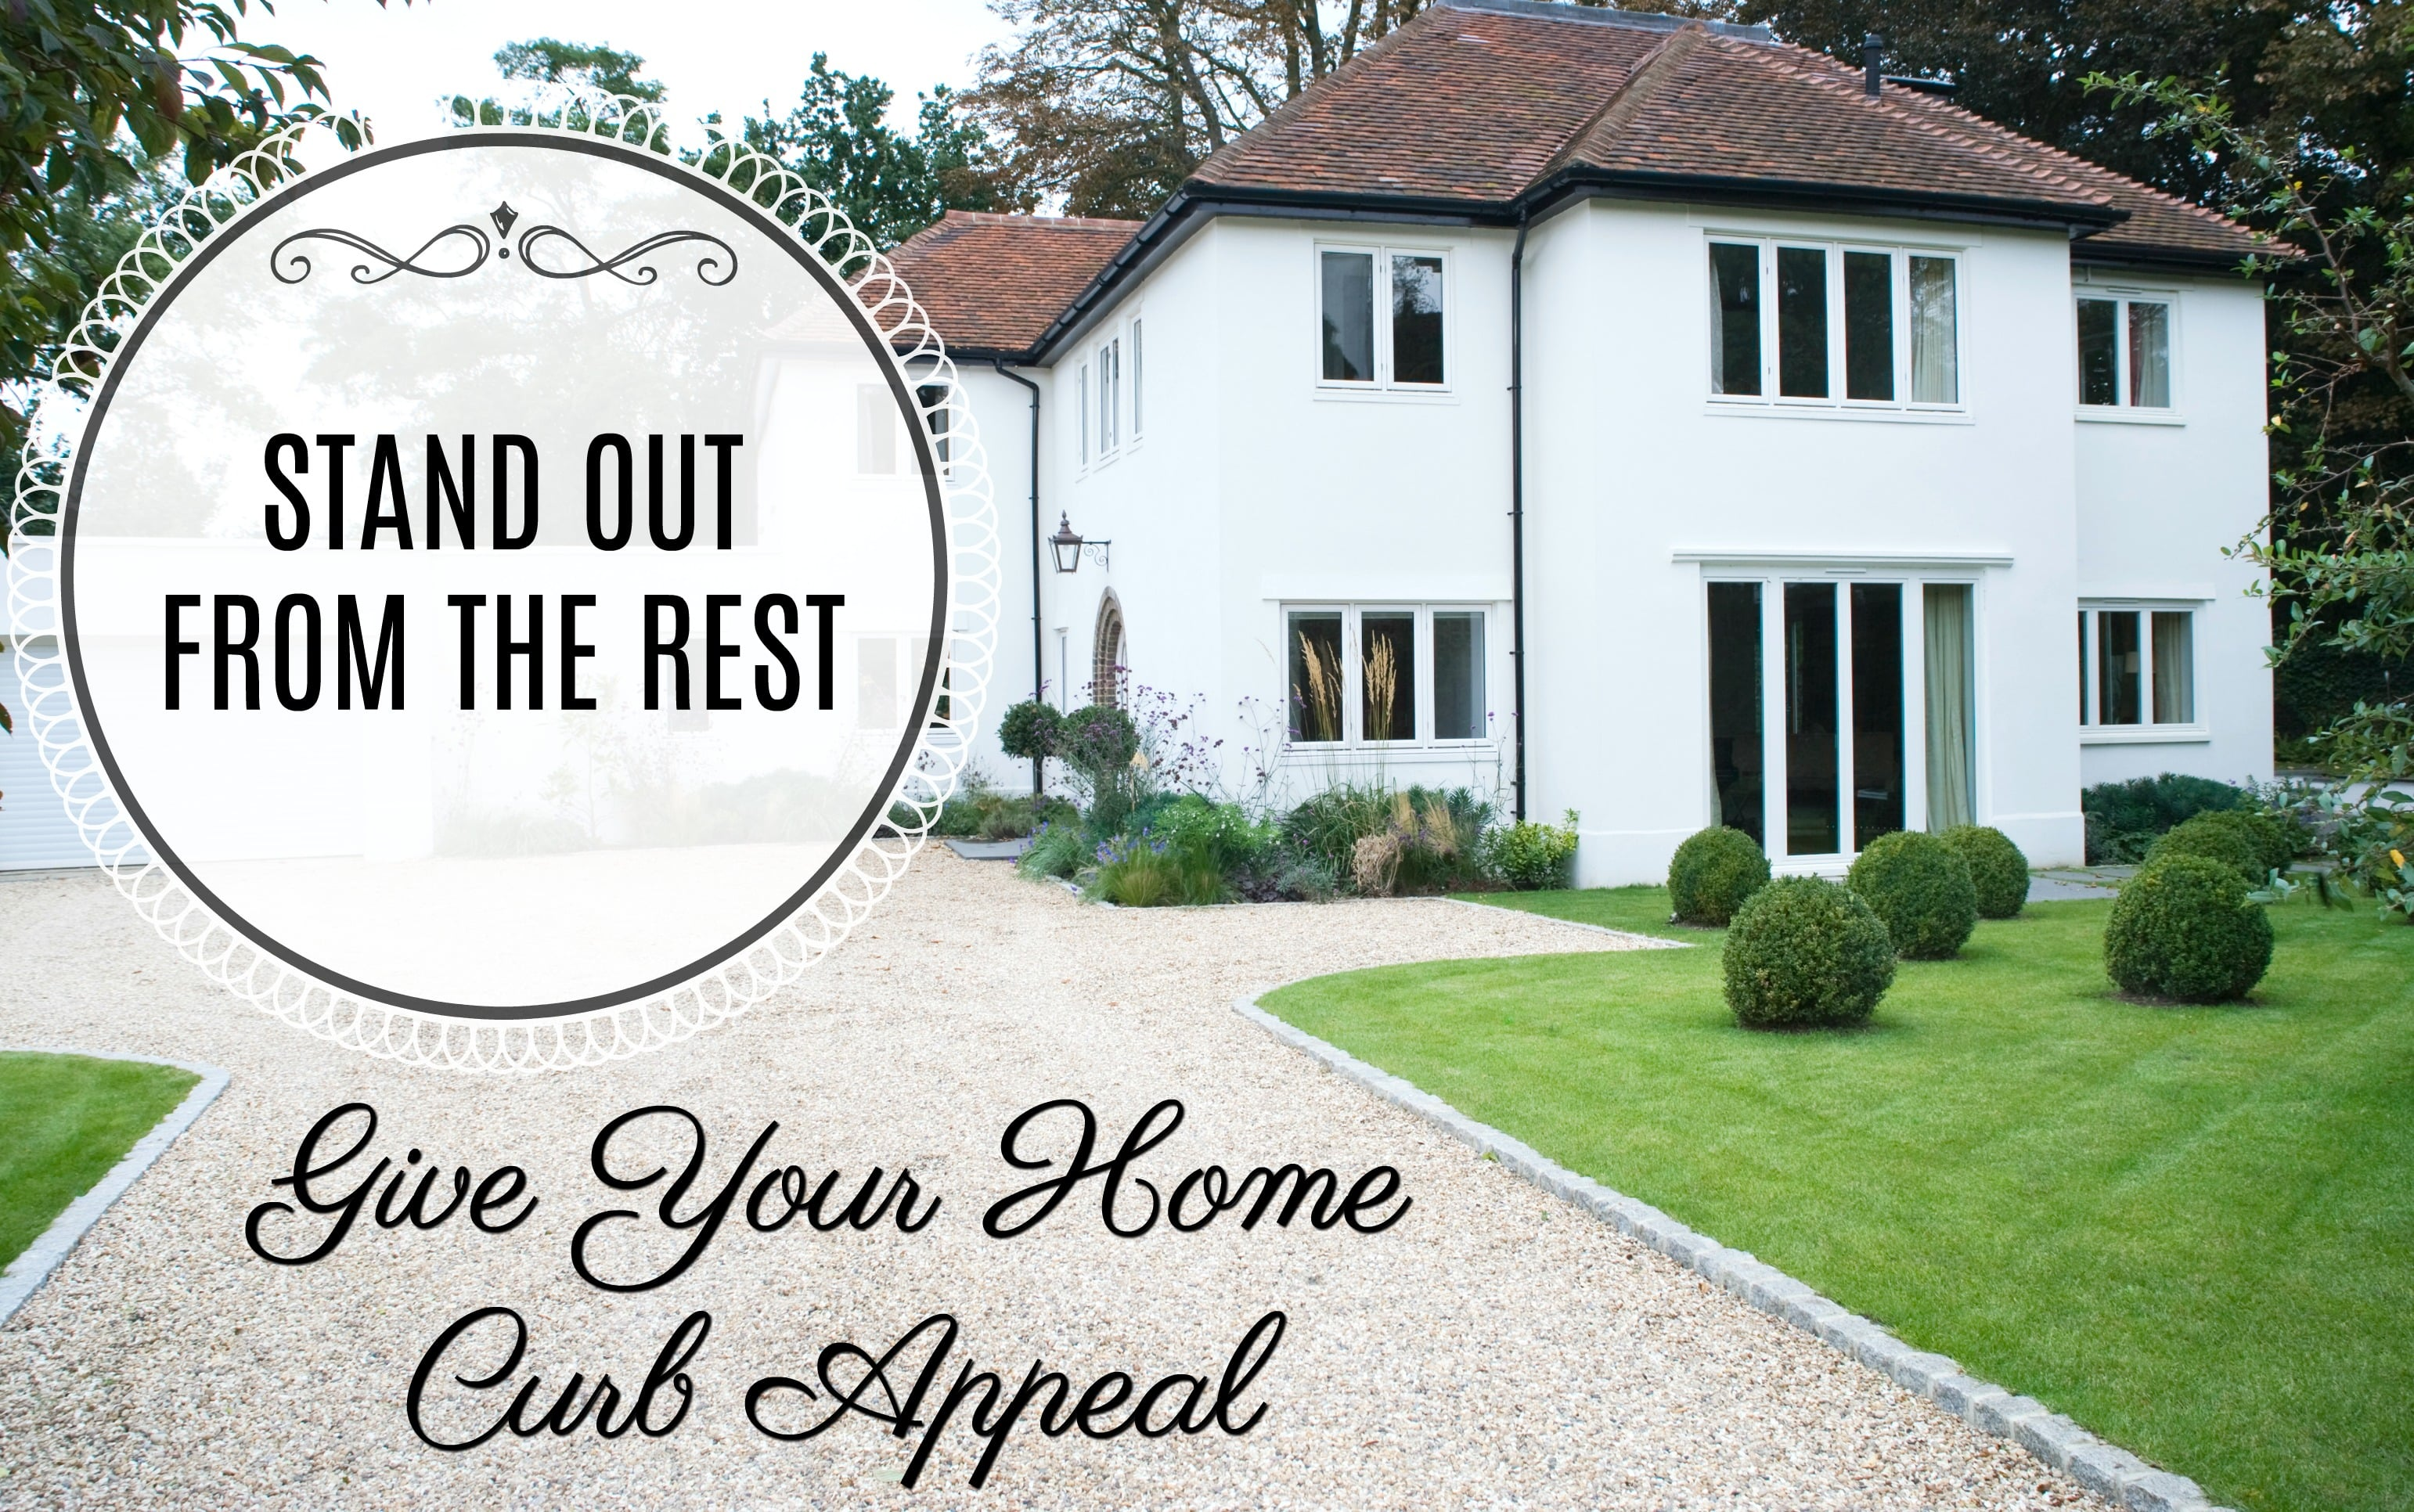 assess the curb appeal of your home and how to improve it